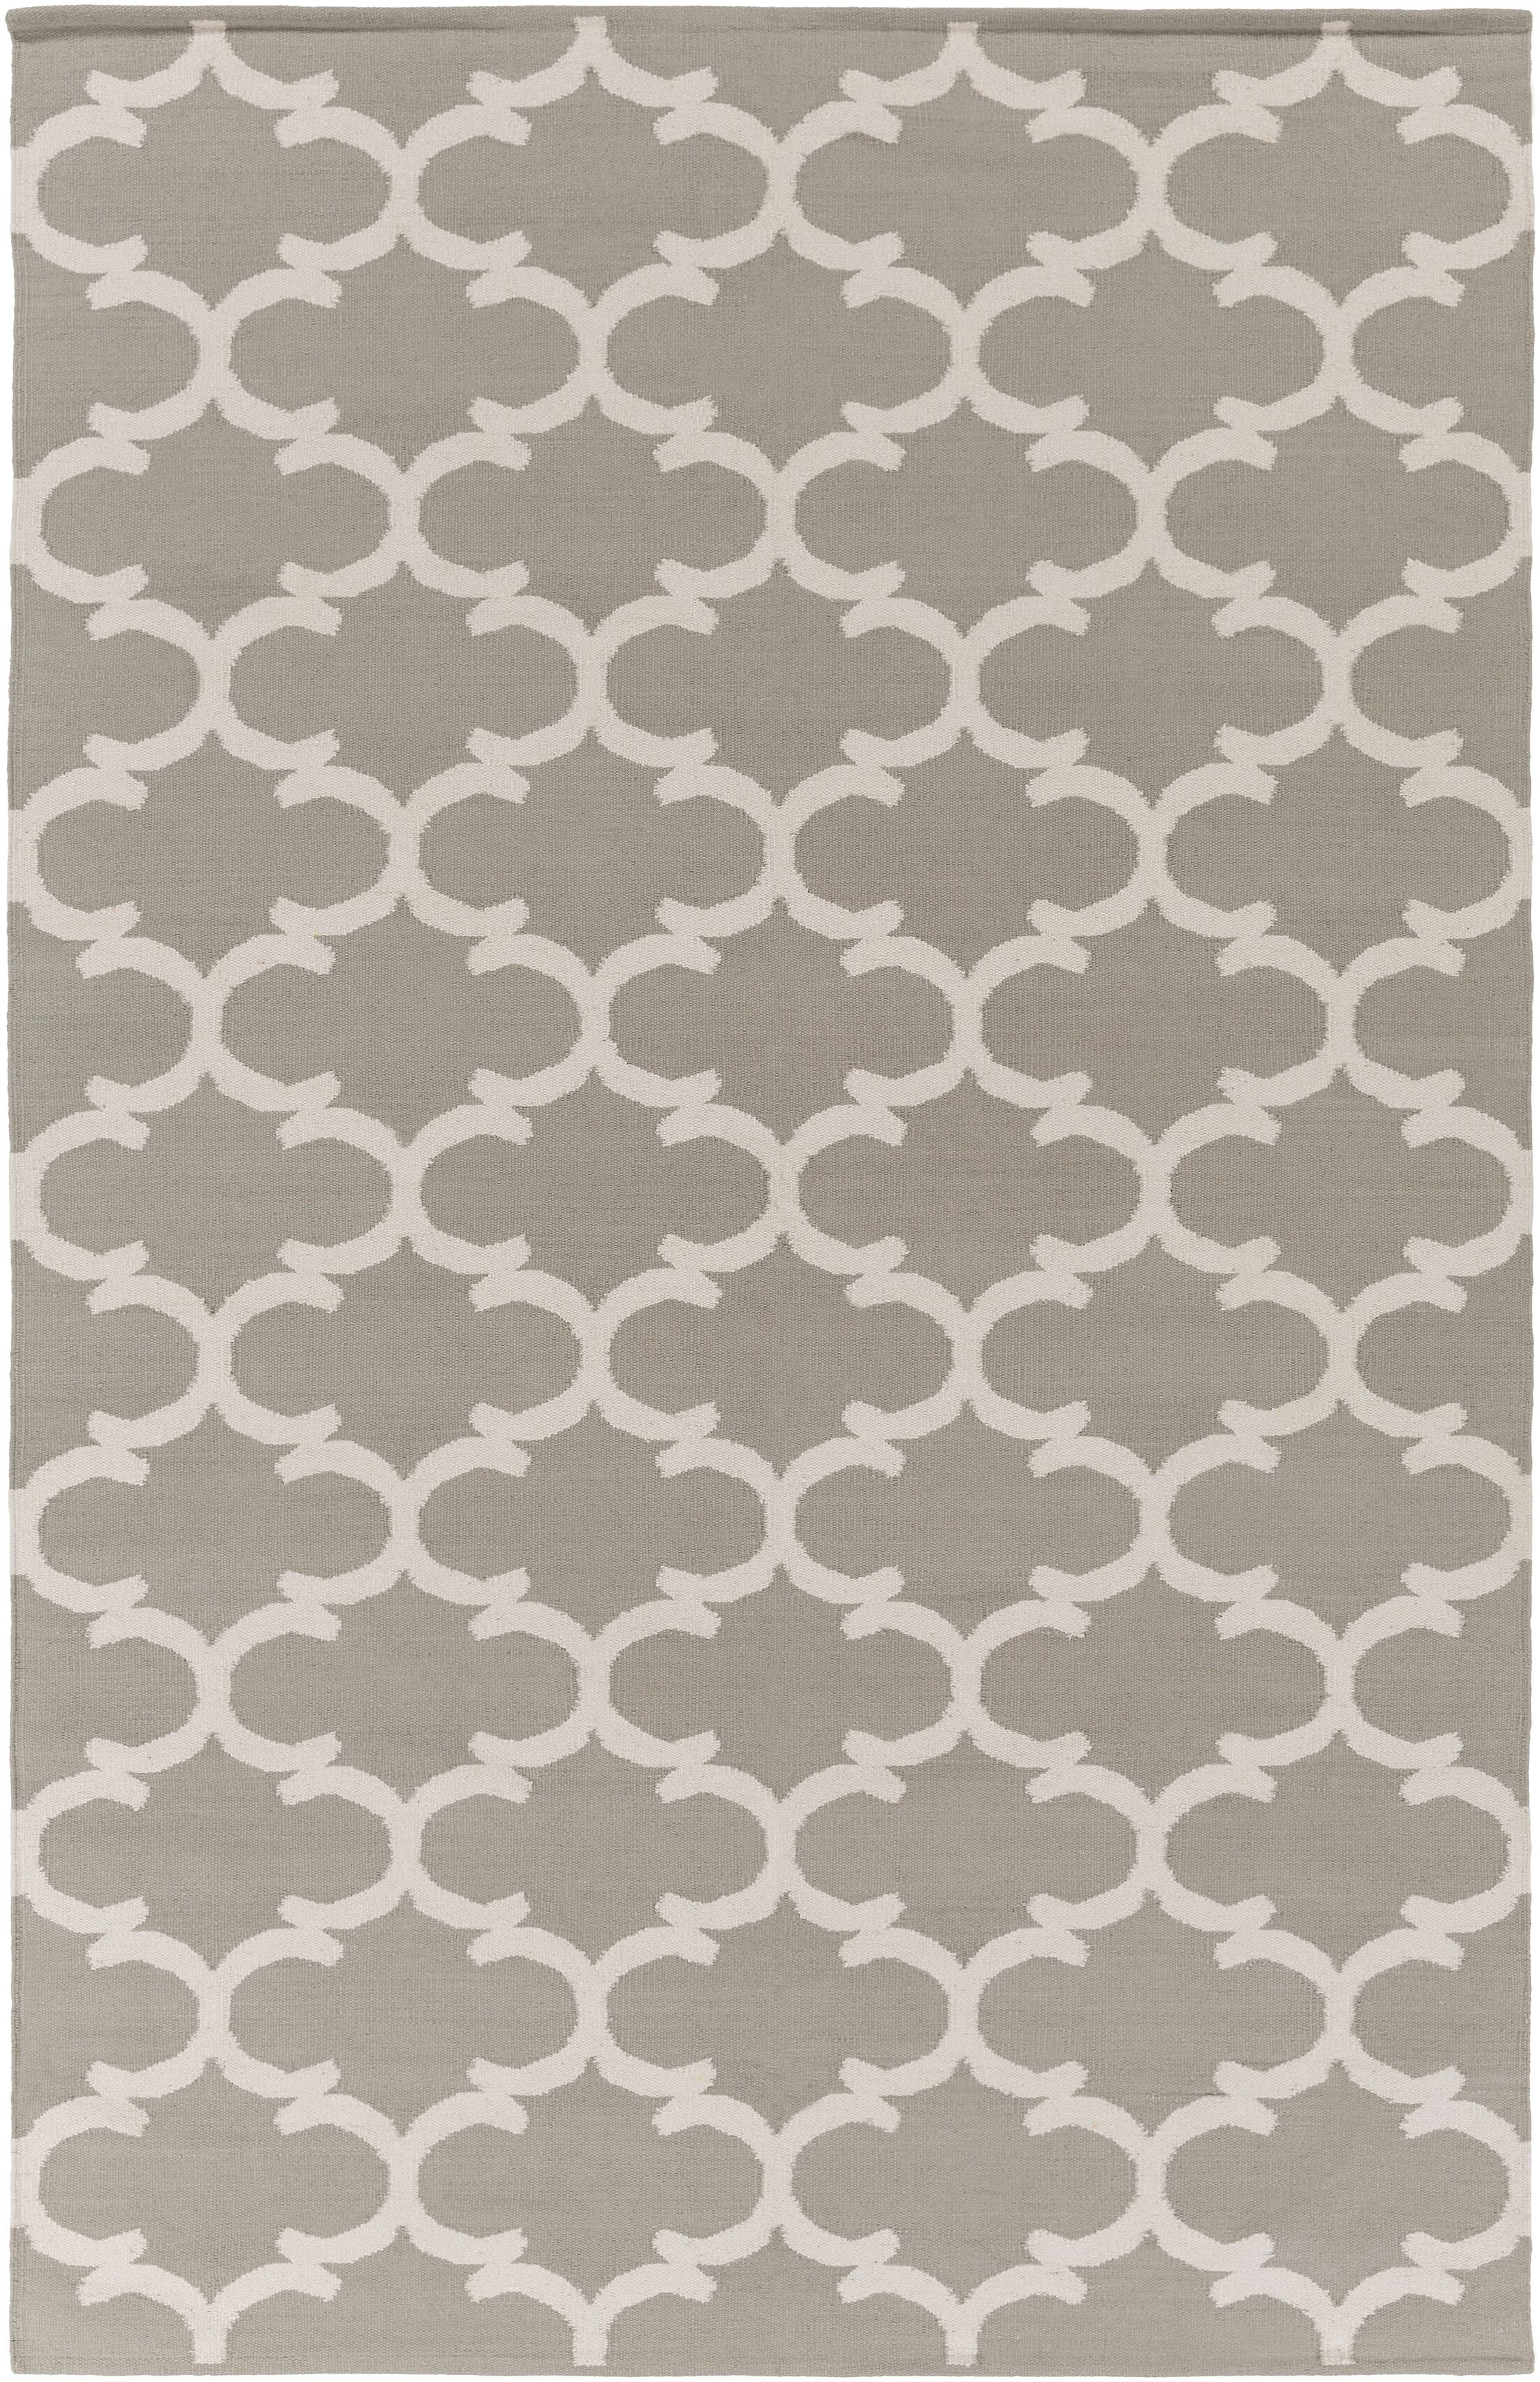 Ayles Gray & Ivory Area Rug Rug Size: Rectangle 9' x 12'